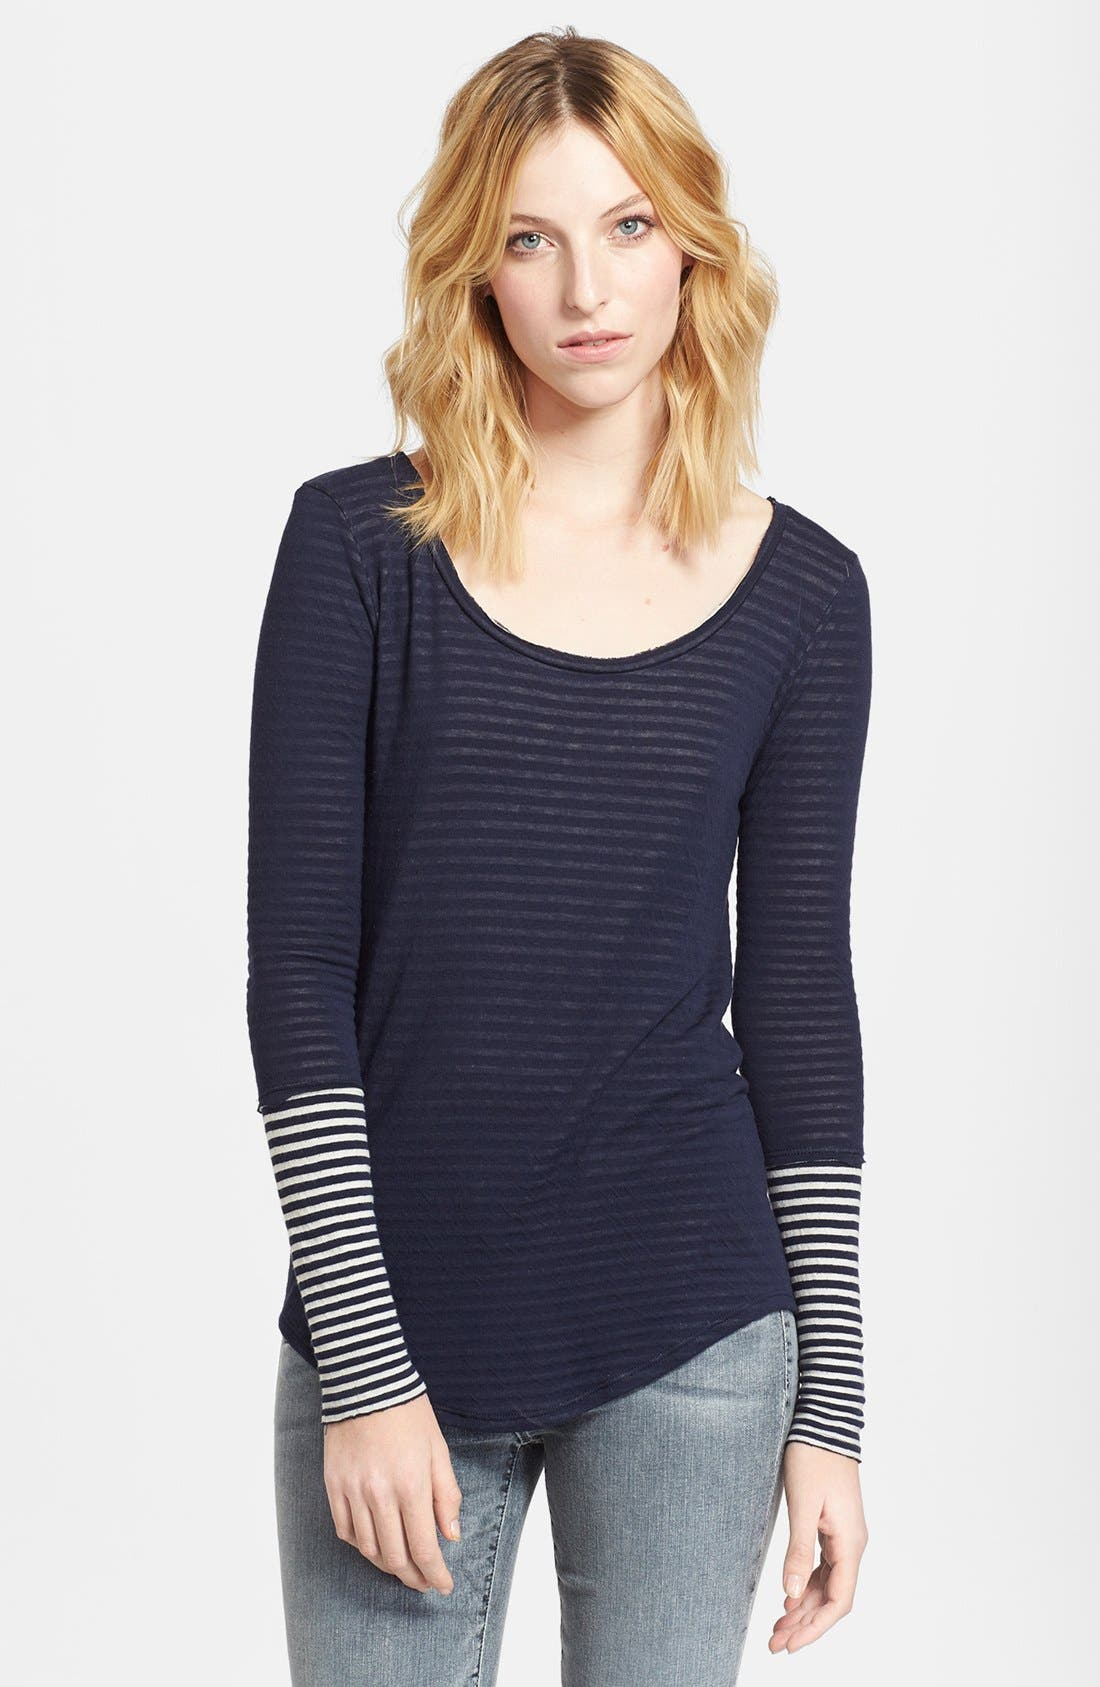 Main Image - Whetherly 'Rosewood' Stripe Double Knit Jersey Top